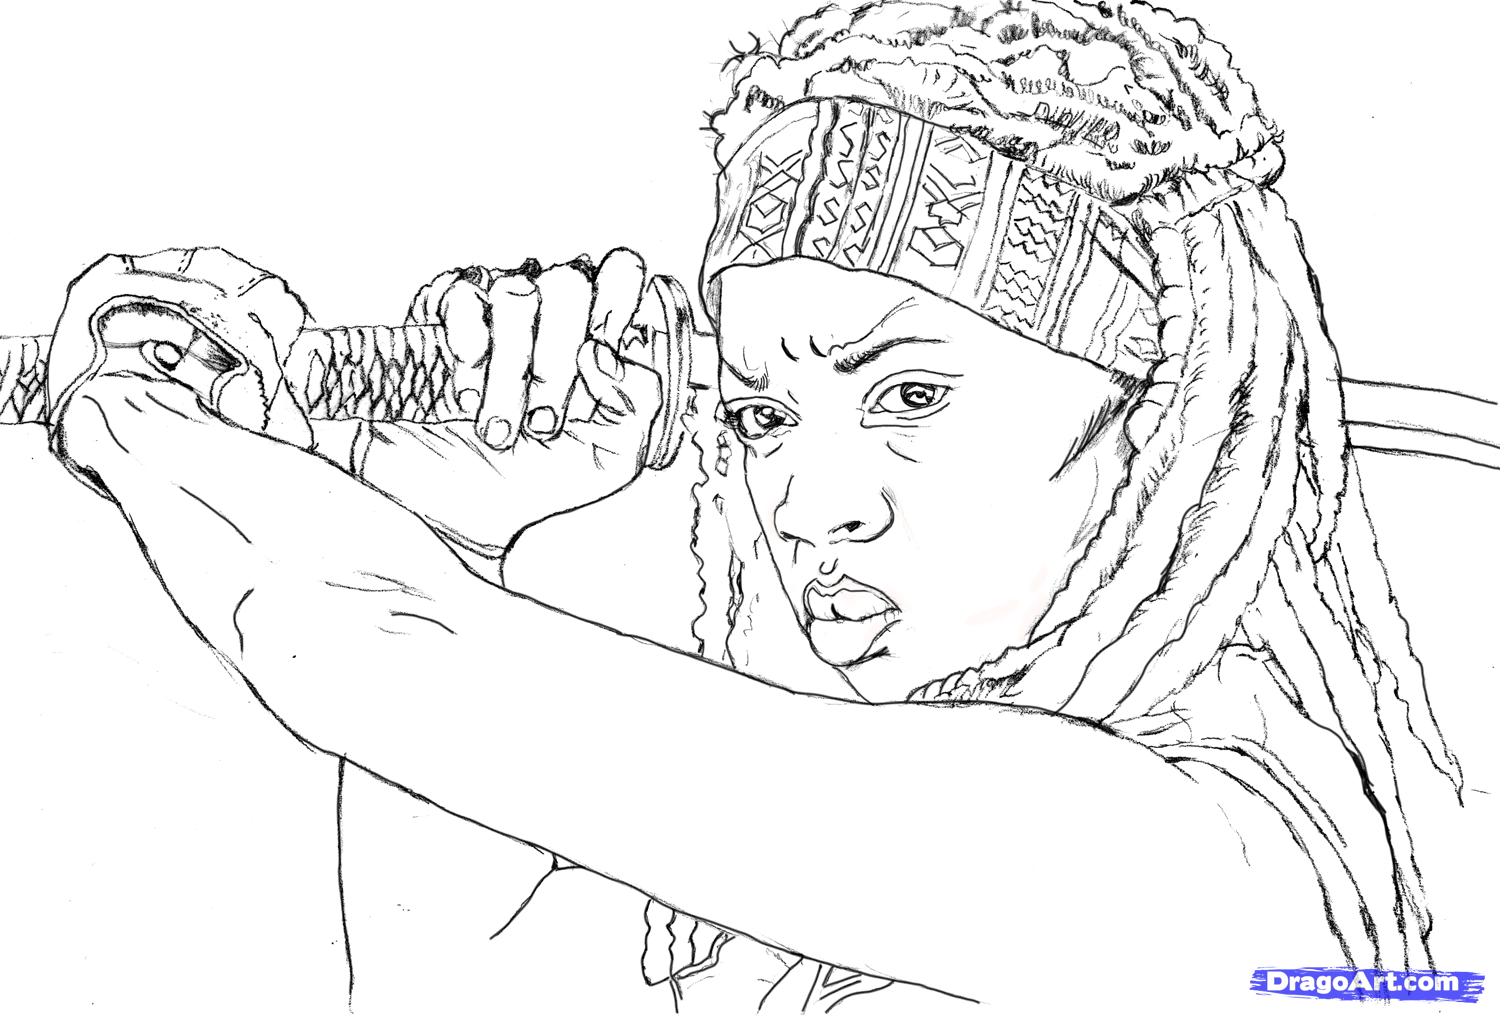 Mochonne Colouring Pages Page 2 The Walking Dead Coloring Pages Coloring Books